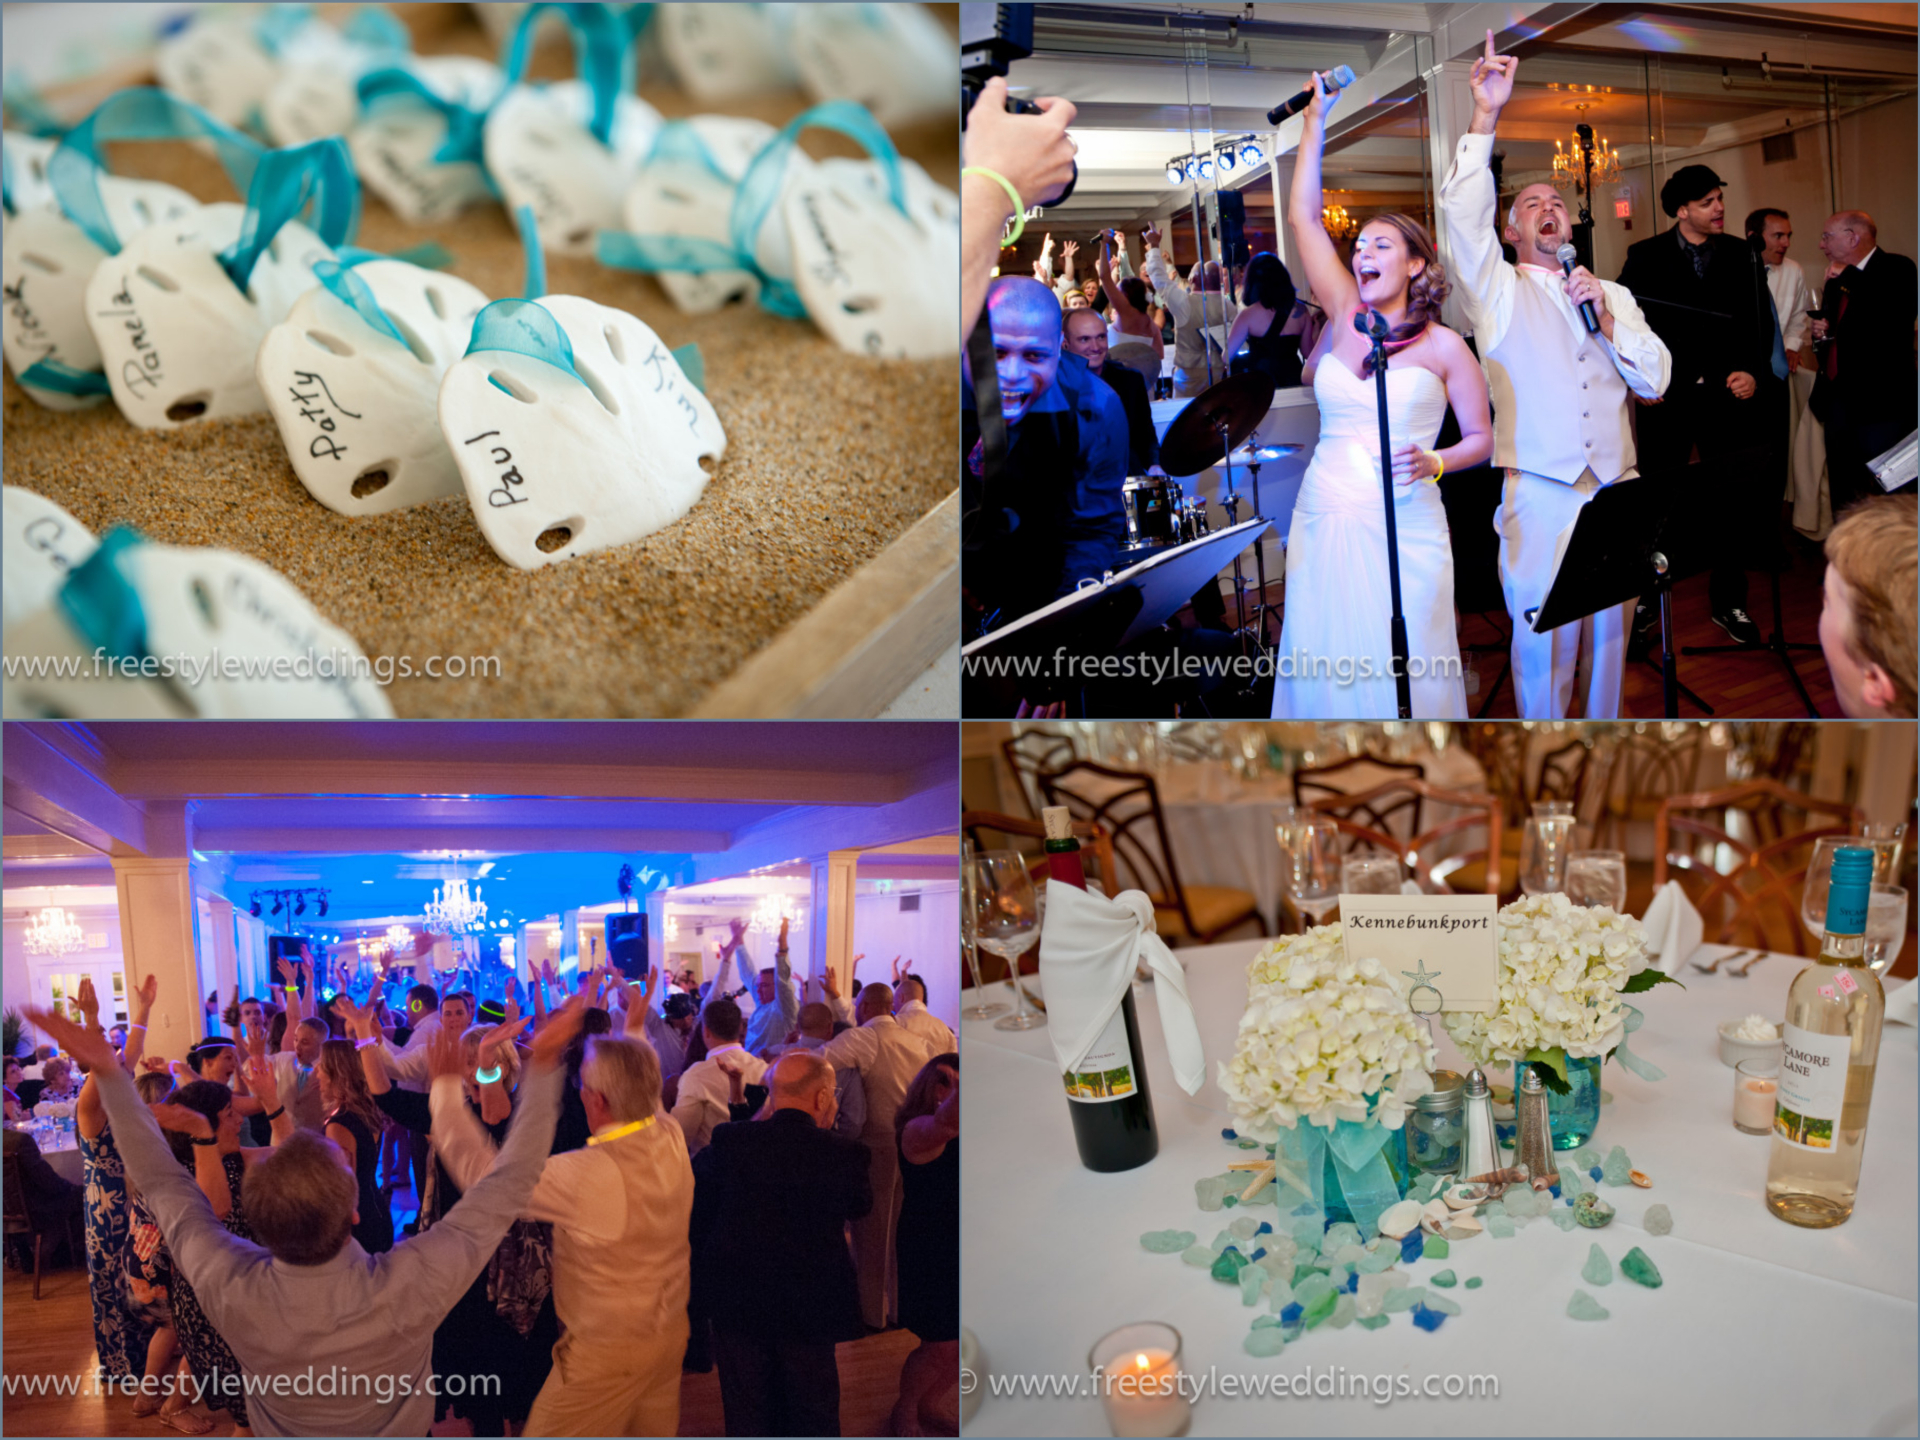 Freestyle-Weddings-Nonantum-Resort-29-1024x681_Fotor_Collage